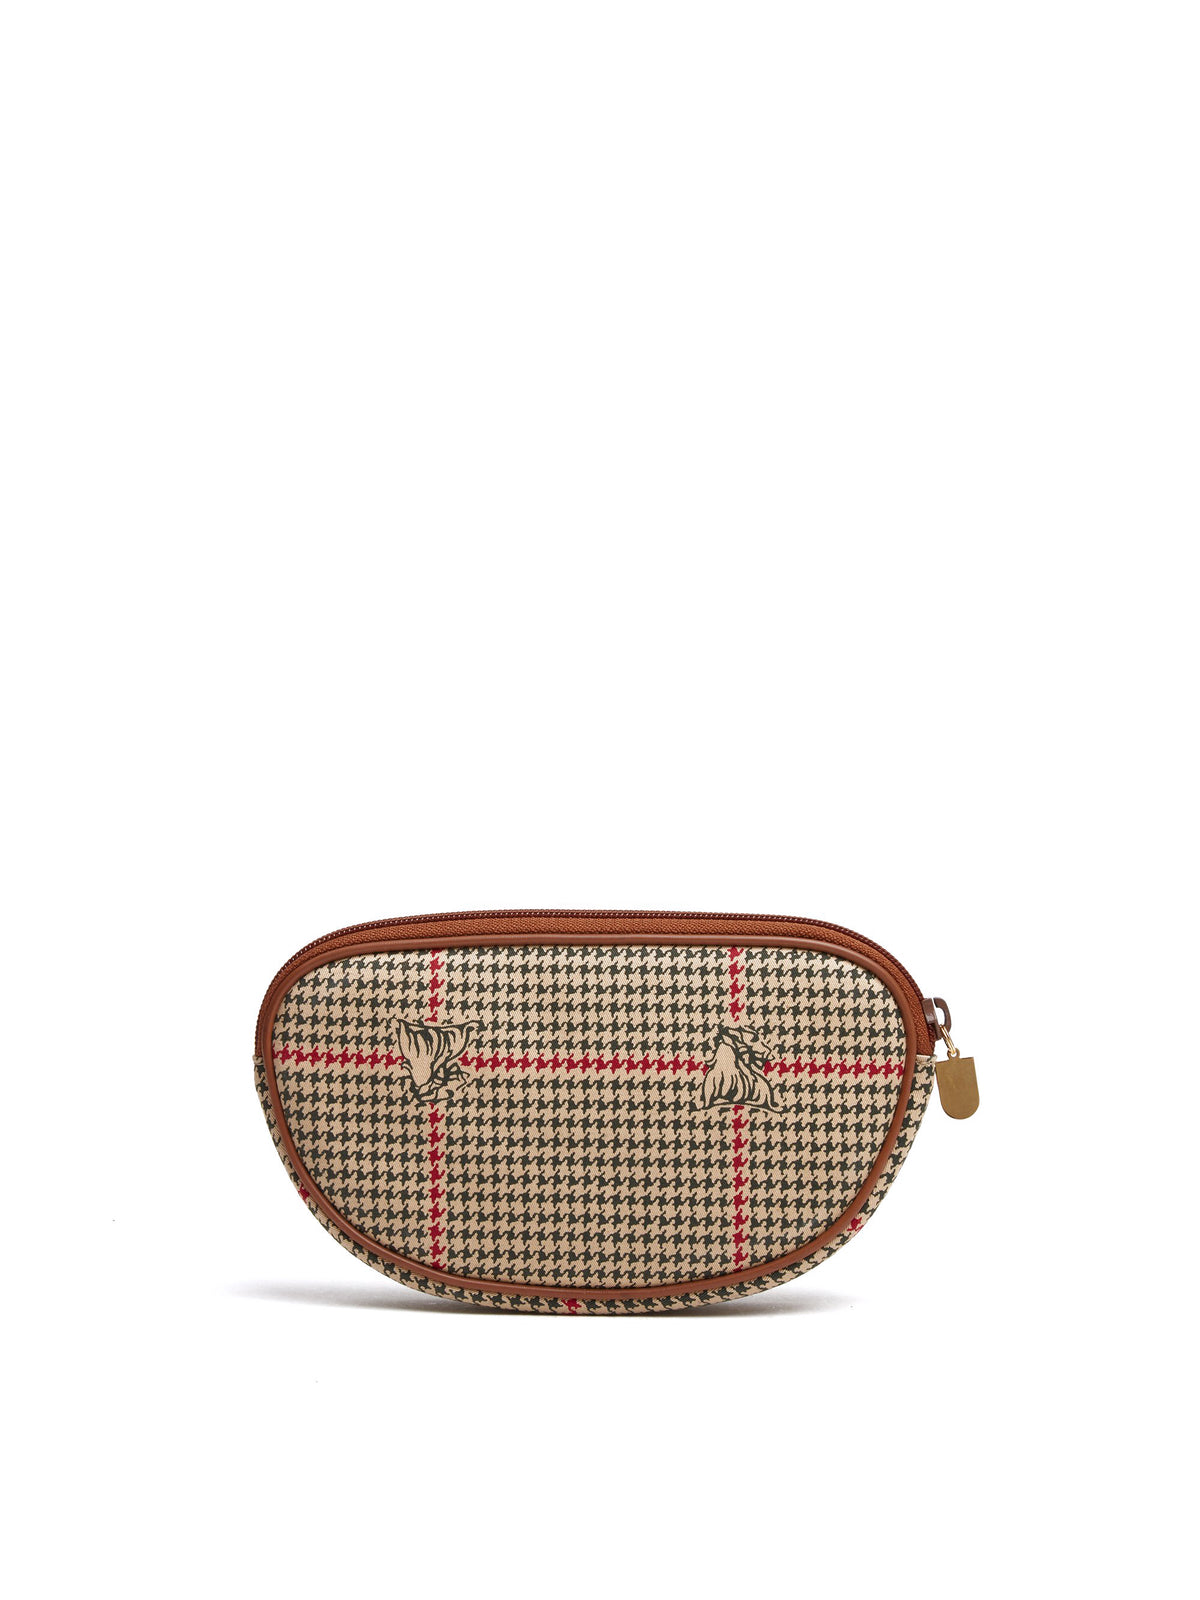 Mark Cross Vintage Houndstooth Cosmetic Bag Cognac Back